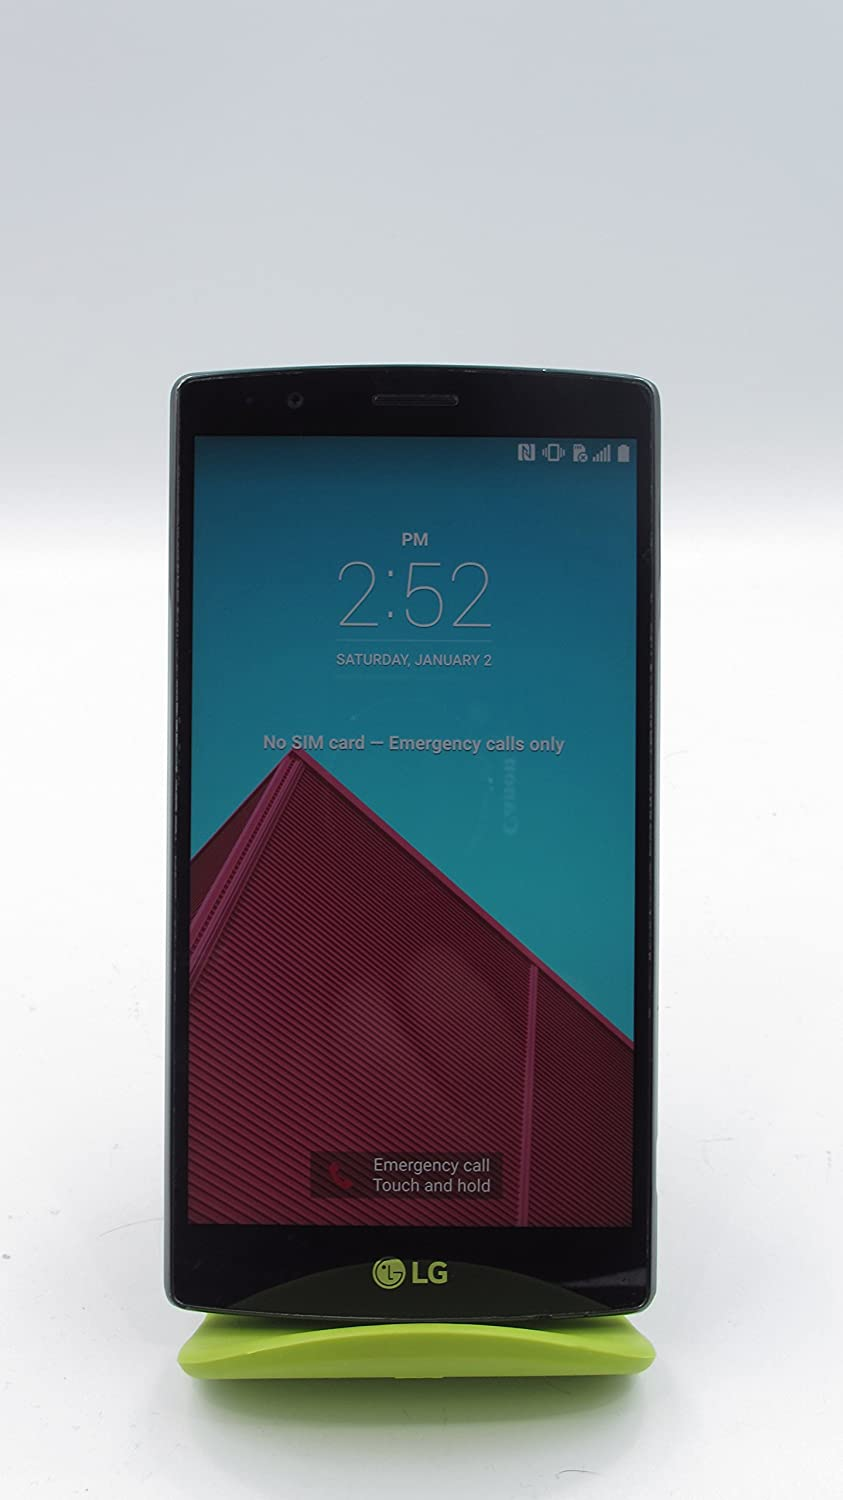 Amazon.com: LG G4 H811 4G LTE Smartphone, 16MP Camera, 32GB, Metallic Grey  (T-Mobile): Cell Phones & Accessories